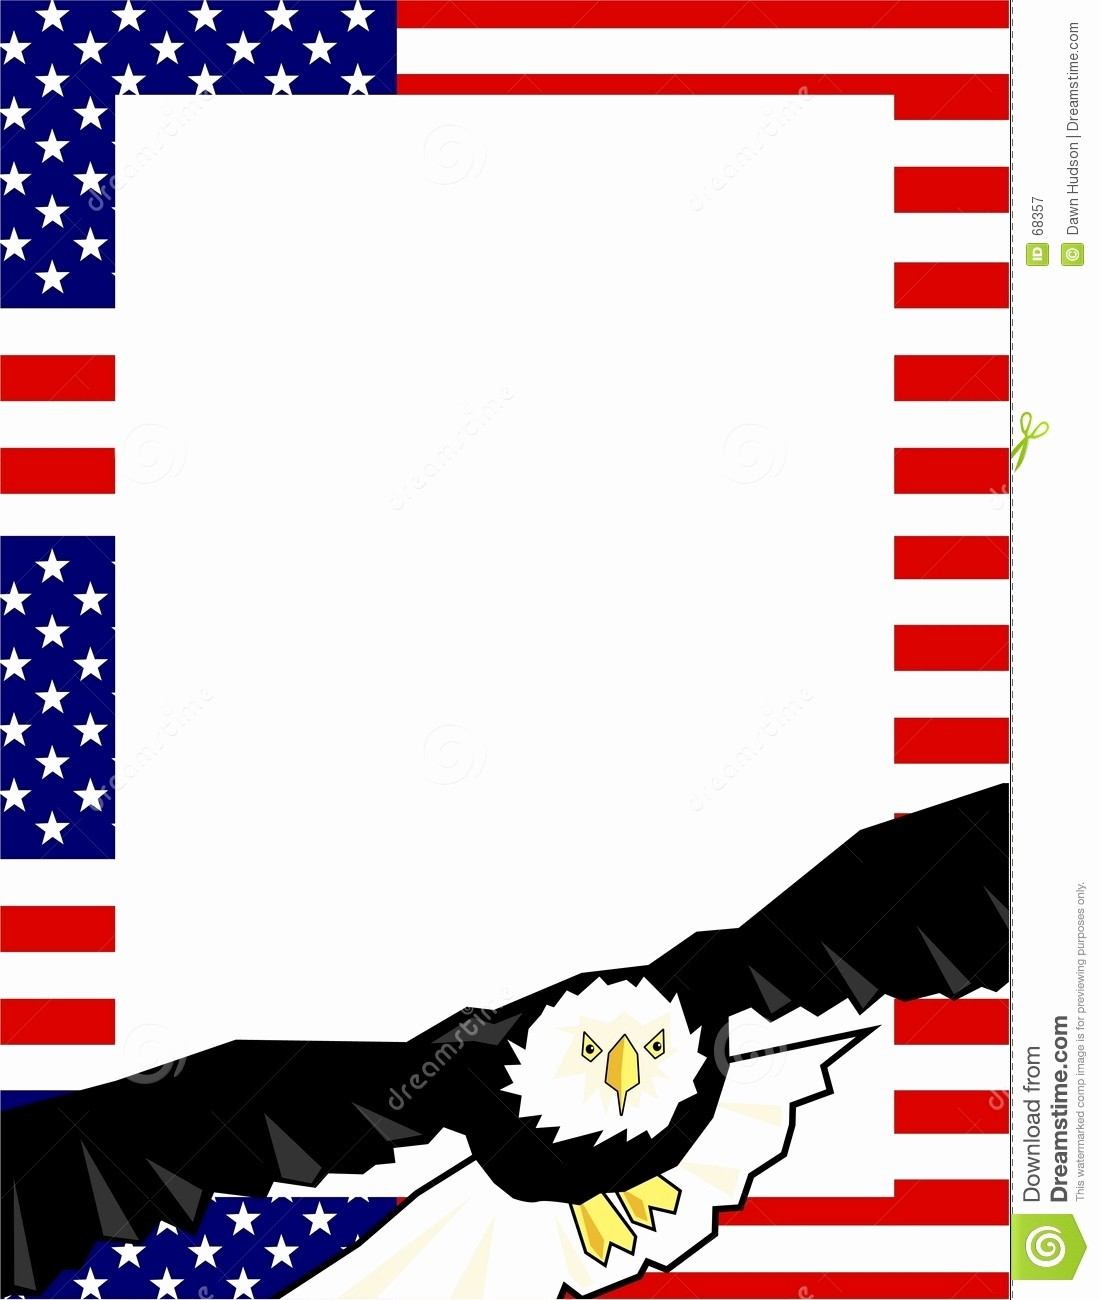 Patriotic Borders for Word Documents Awesome Patriotic Border Stock Vector Illustration Of Clipart